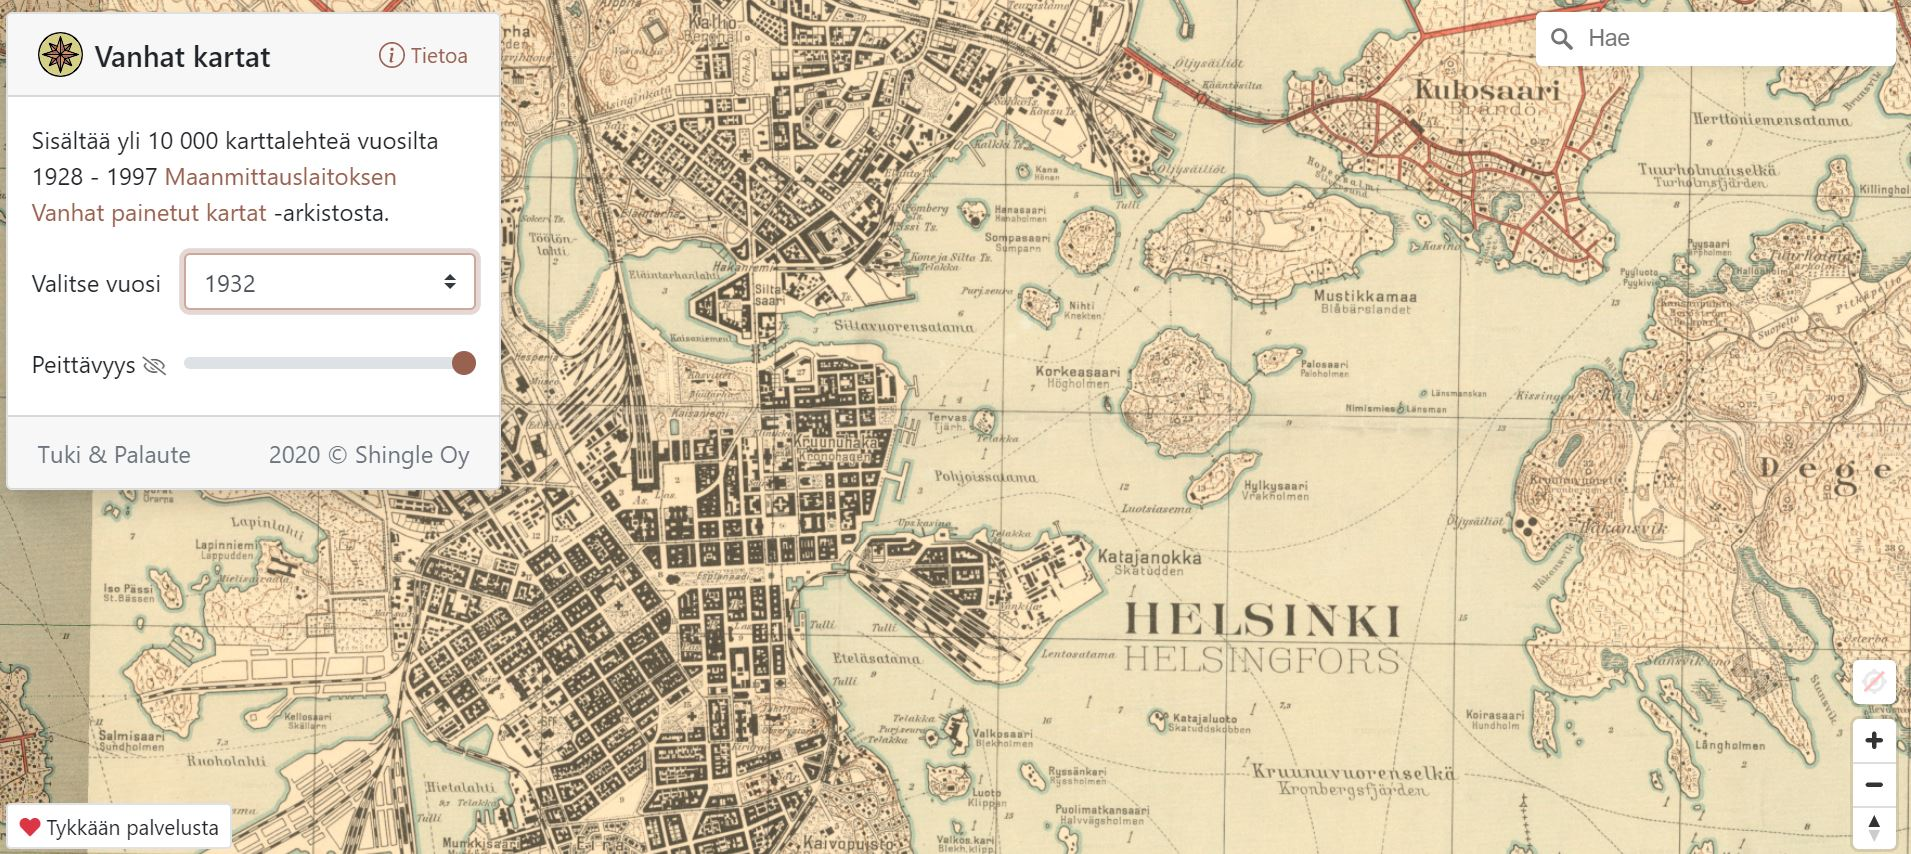 Vanhatkartat.fi shows what Helsinki looked like in 1932.